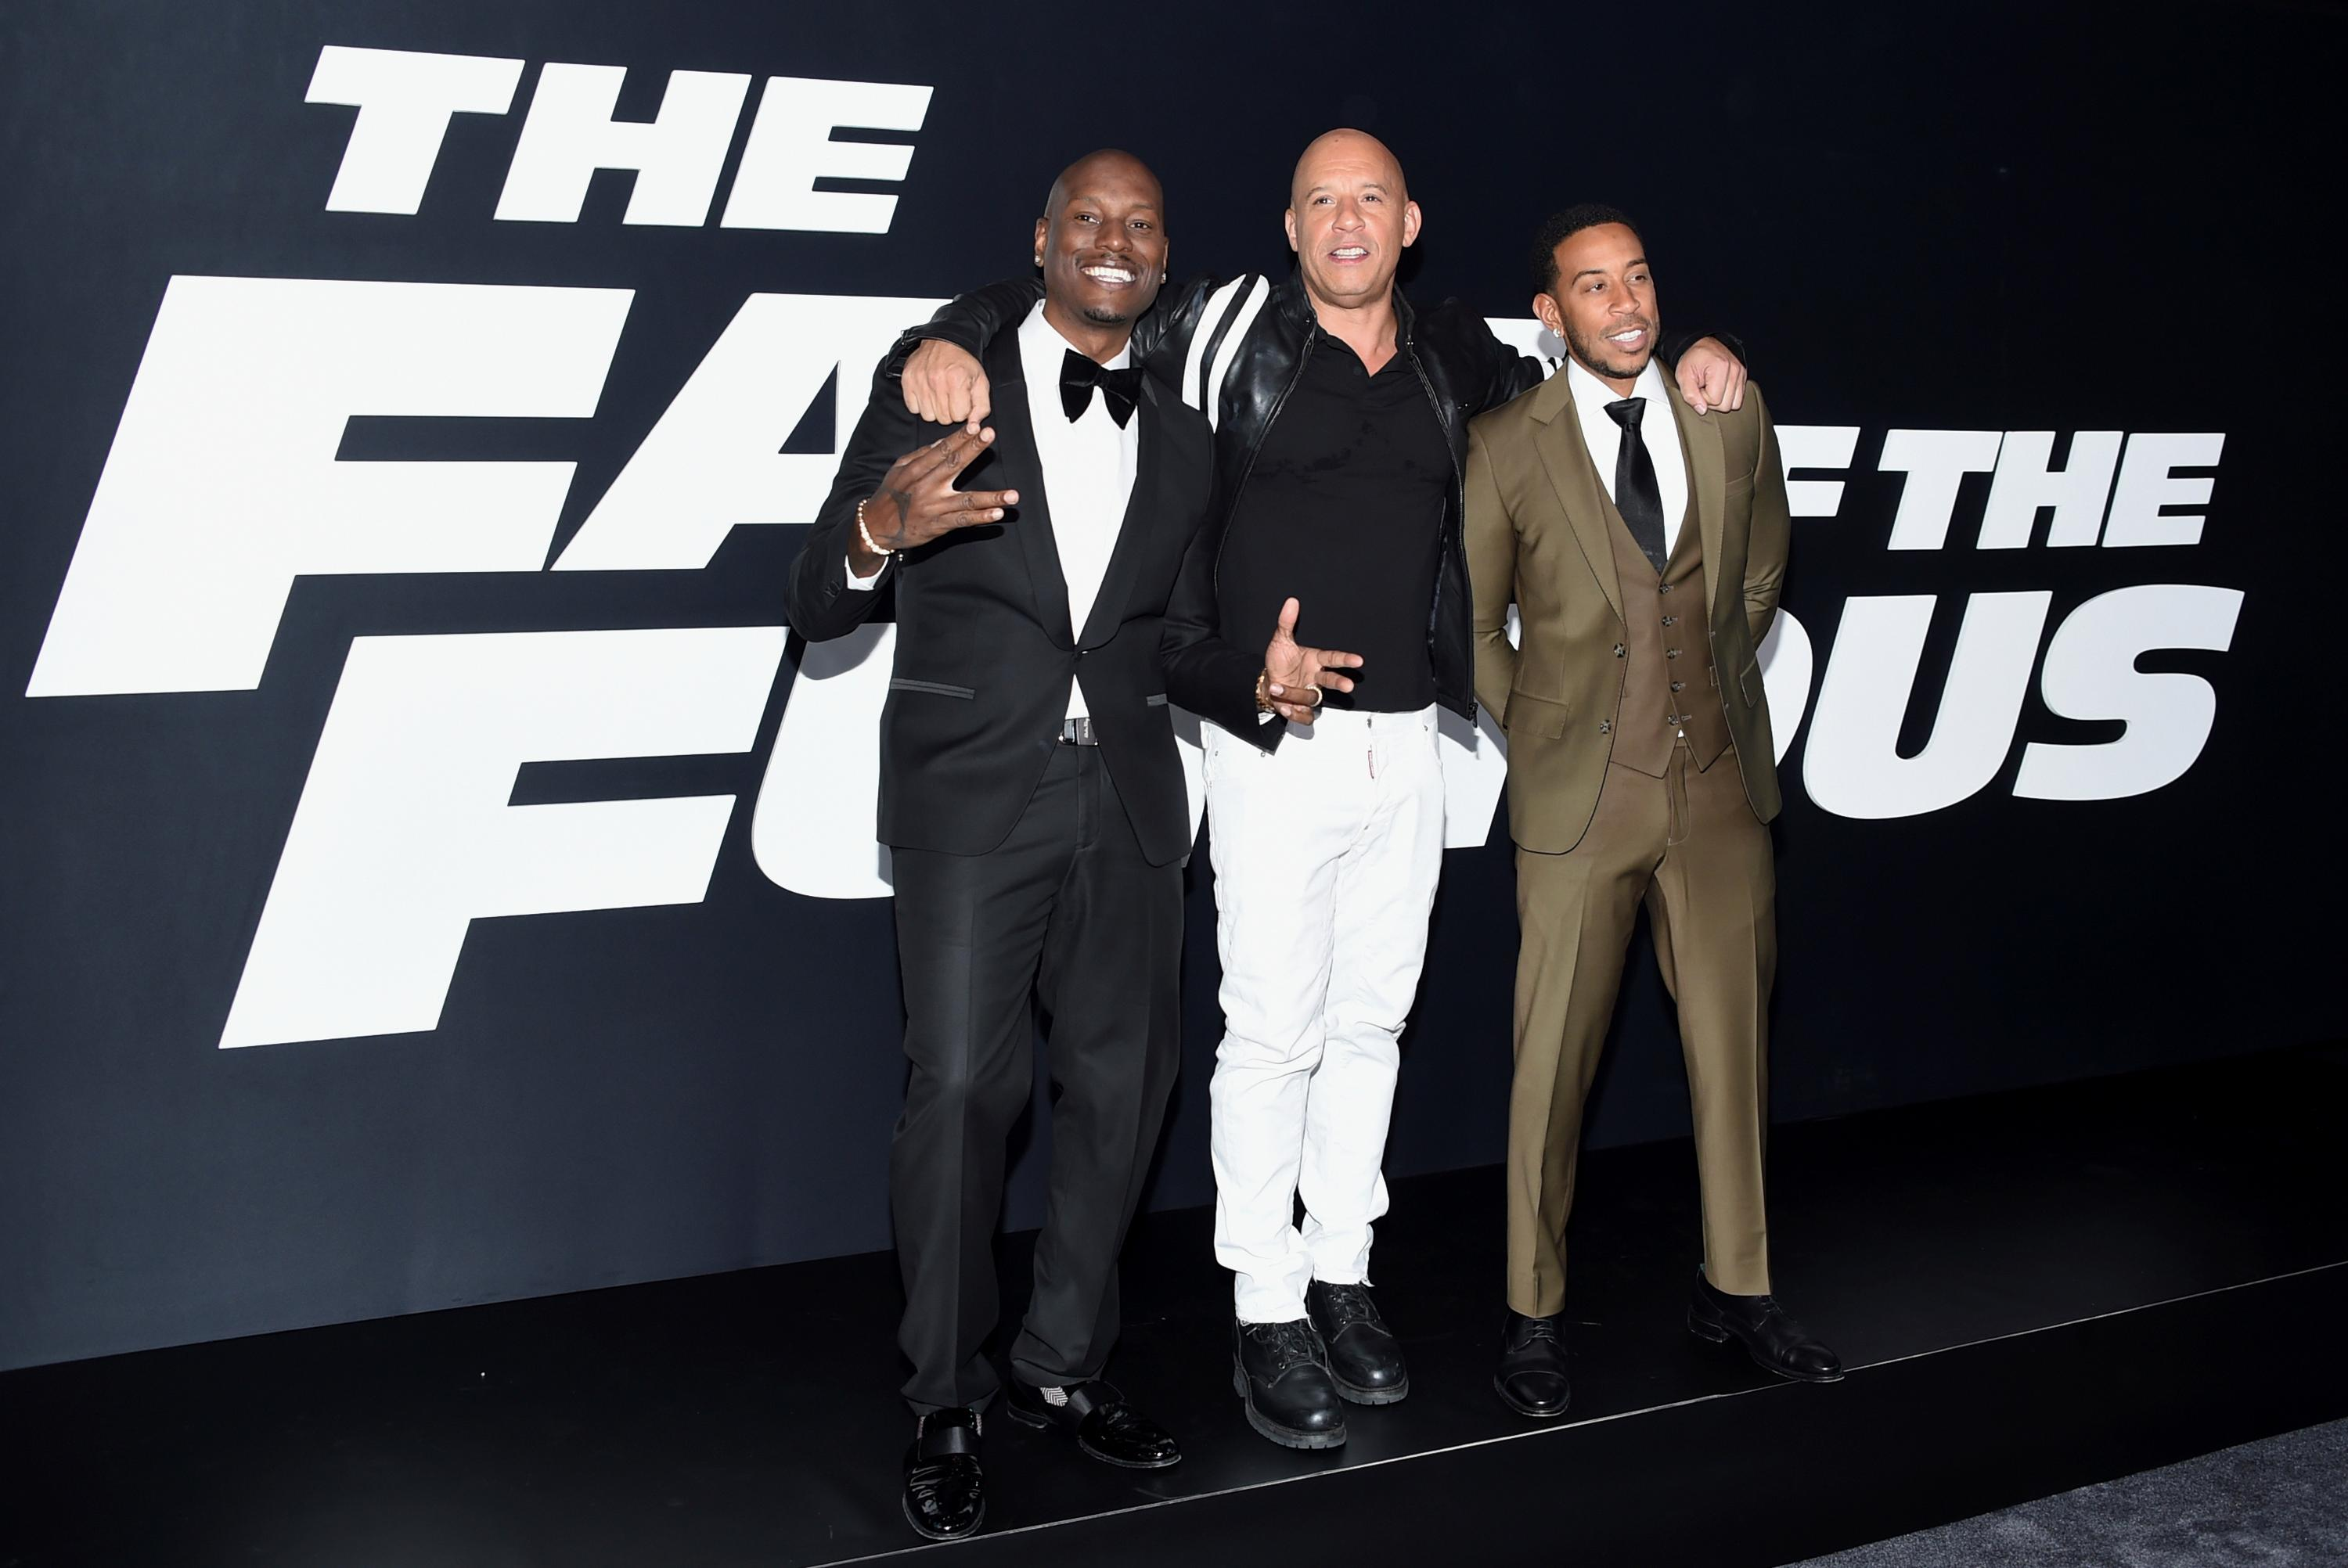 "FILE - In this April 8, 2017 file photo, Tyrese Gibson, from left, Vin Diesel and Ludacris attend the world premiere of ""The Fate of the Furious"" in New York. The ""Fast and the Furious"" is putting the brakes on the ninth installment in the franchise. Universal Pictures said Wednesday that the film's release will move back a year to April 10, 2020. It was originally set for release in April 2019. The studio did not offer a reason for the shift.(Photo by Evan Agostini/Invision/AP, File)"